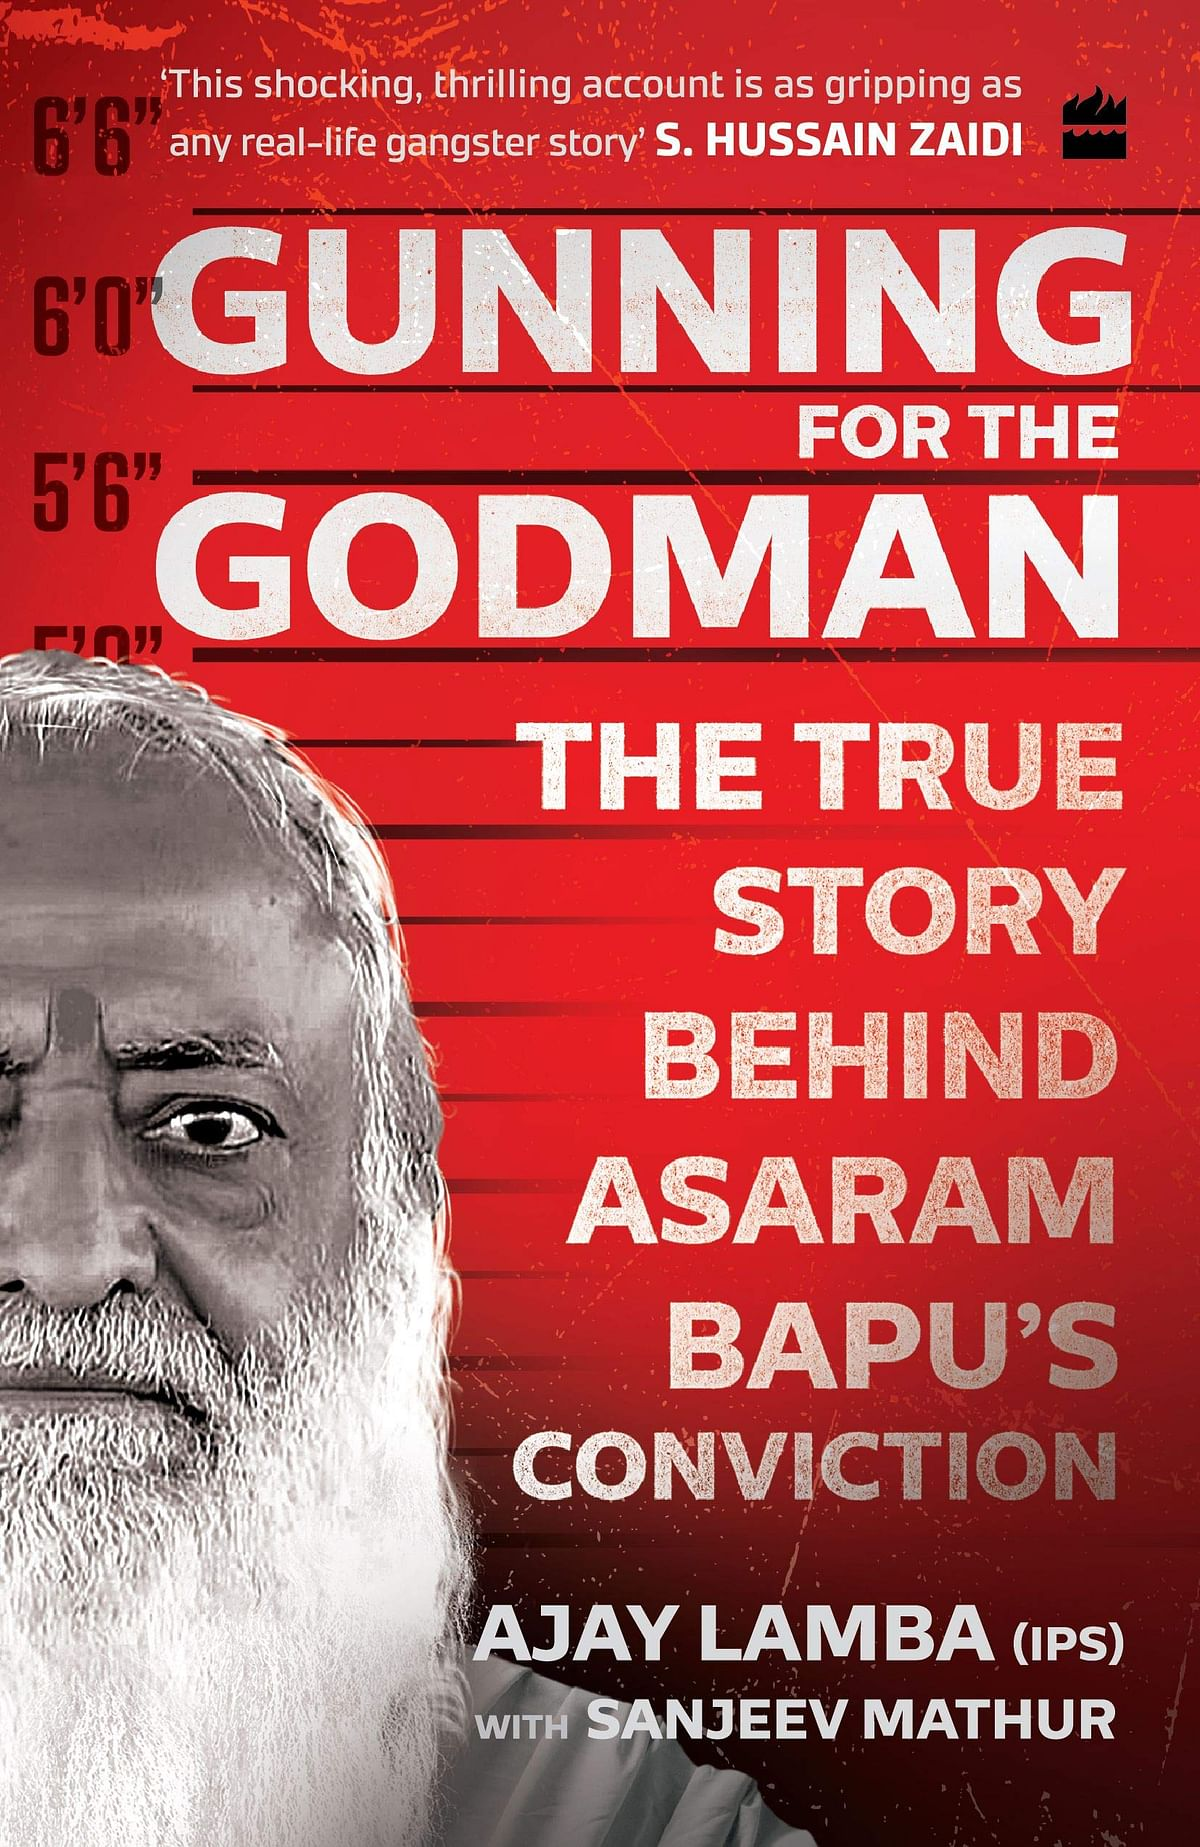 Gunning for The Godman review: A first-hand account of Asaram's arrest and conviction